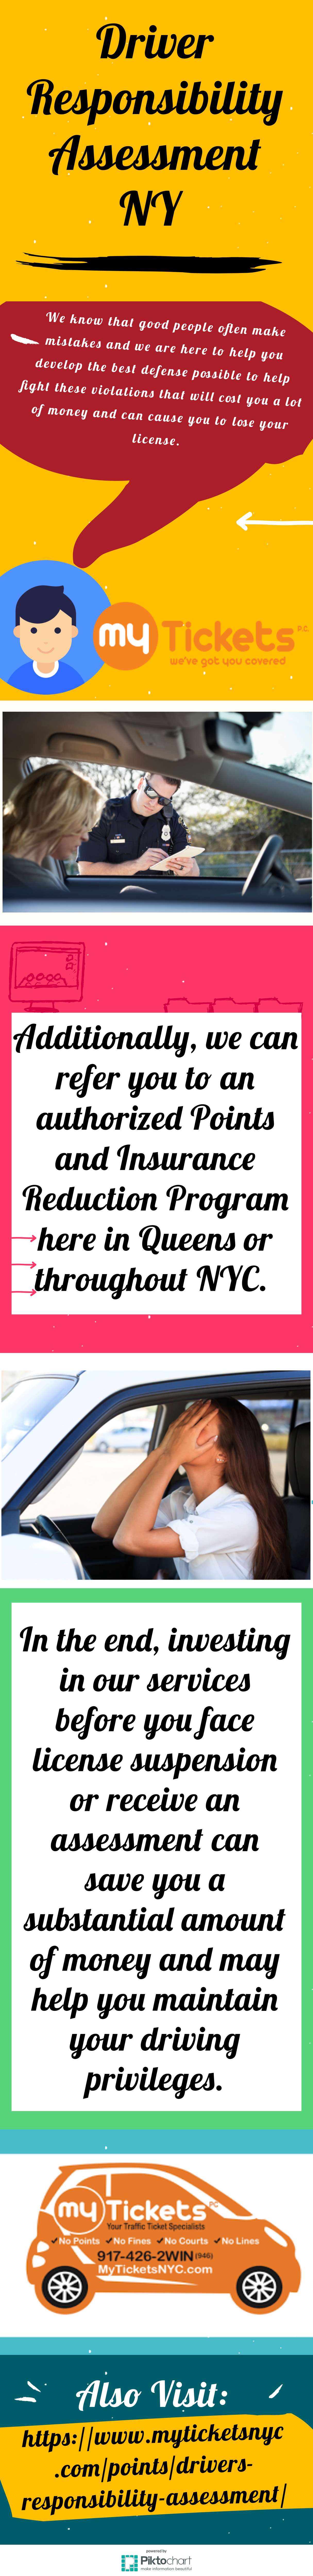 If You Receive Driver Responsibility Assessment Ny Tickets My Tickets Nyc Can Help We Are Here To Help You Develop The Speeding Tickets Red Light Ticket Nyc